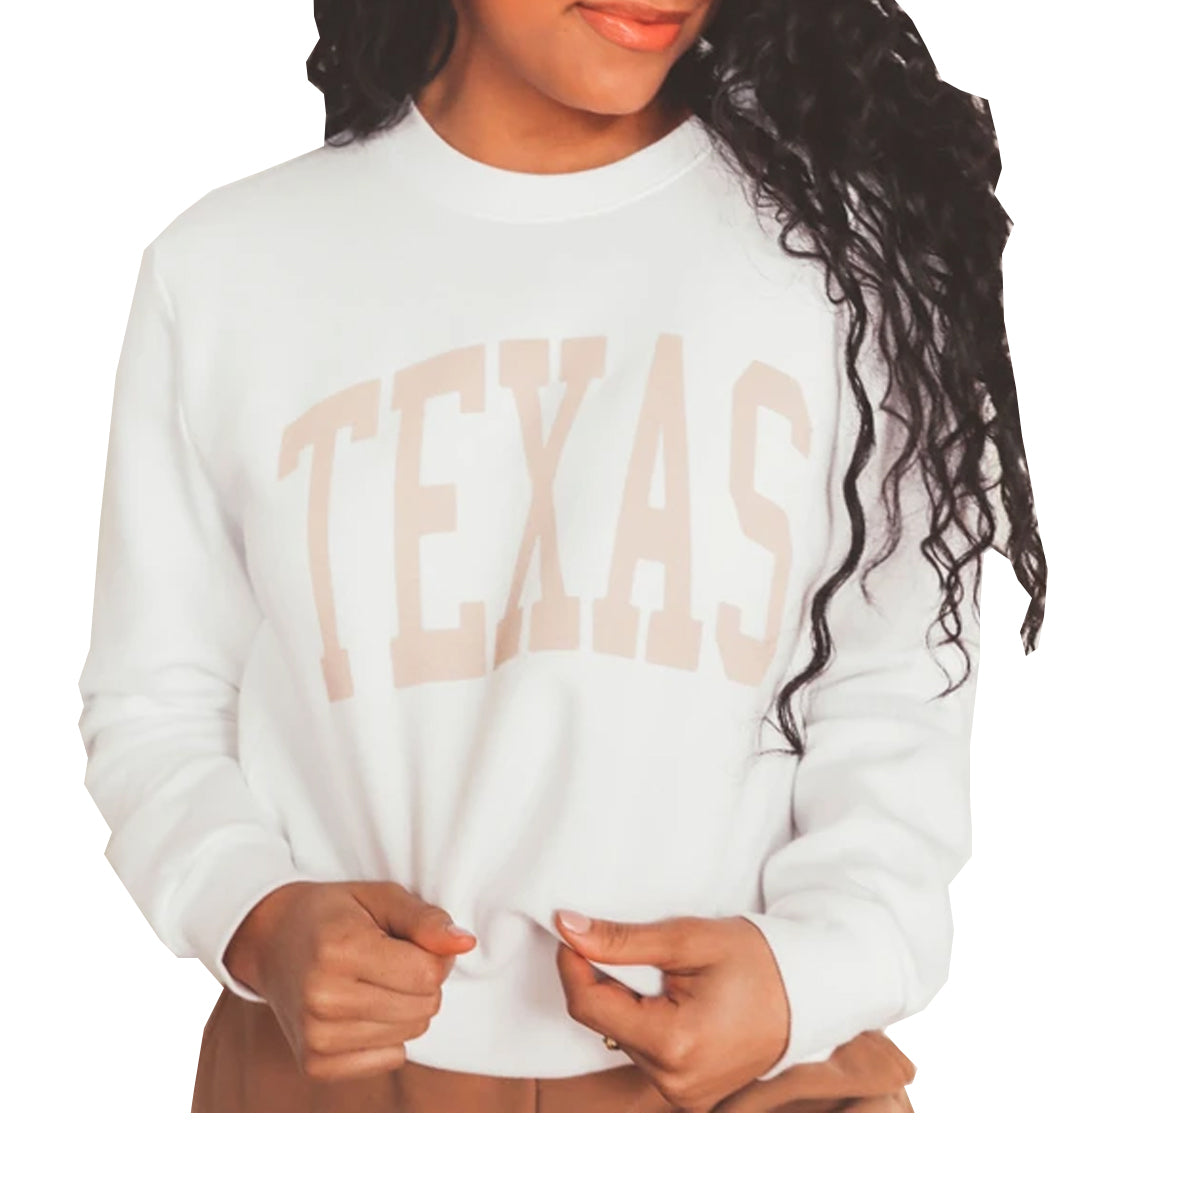 Charlie Southern Women's Texas Neutral Feels Sweatshirt - White